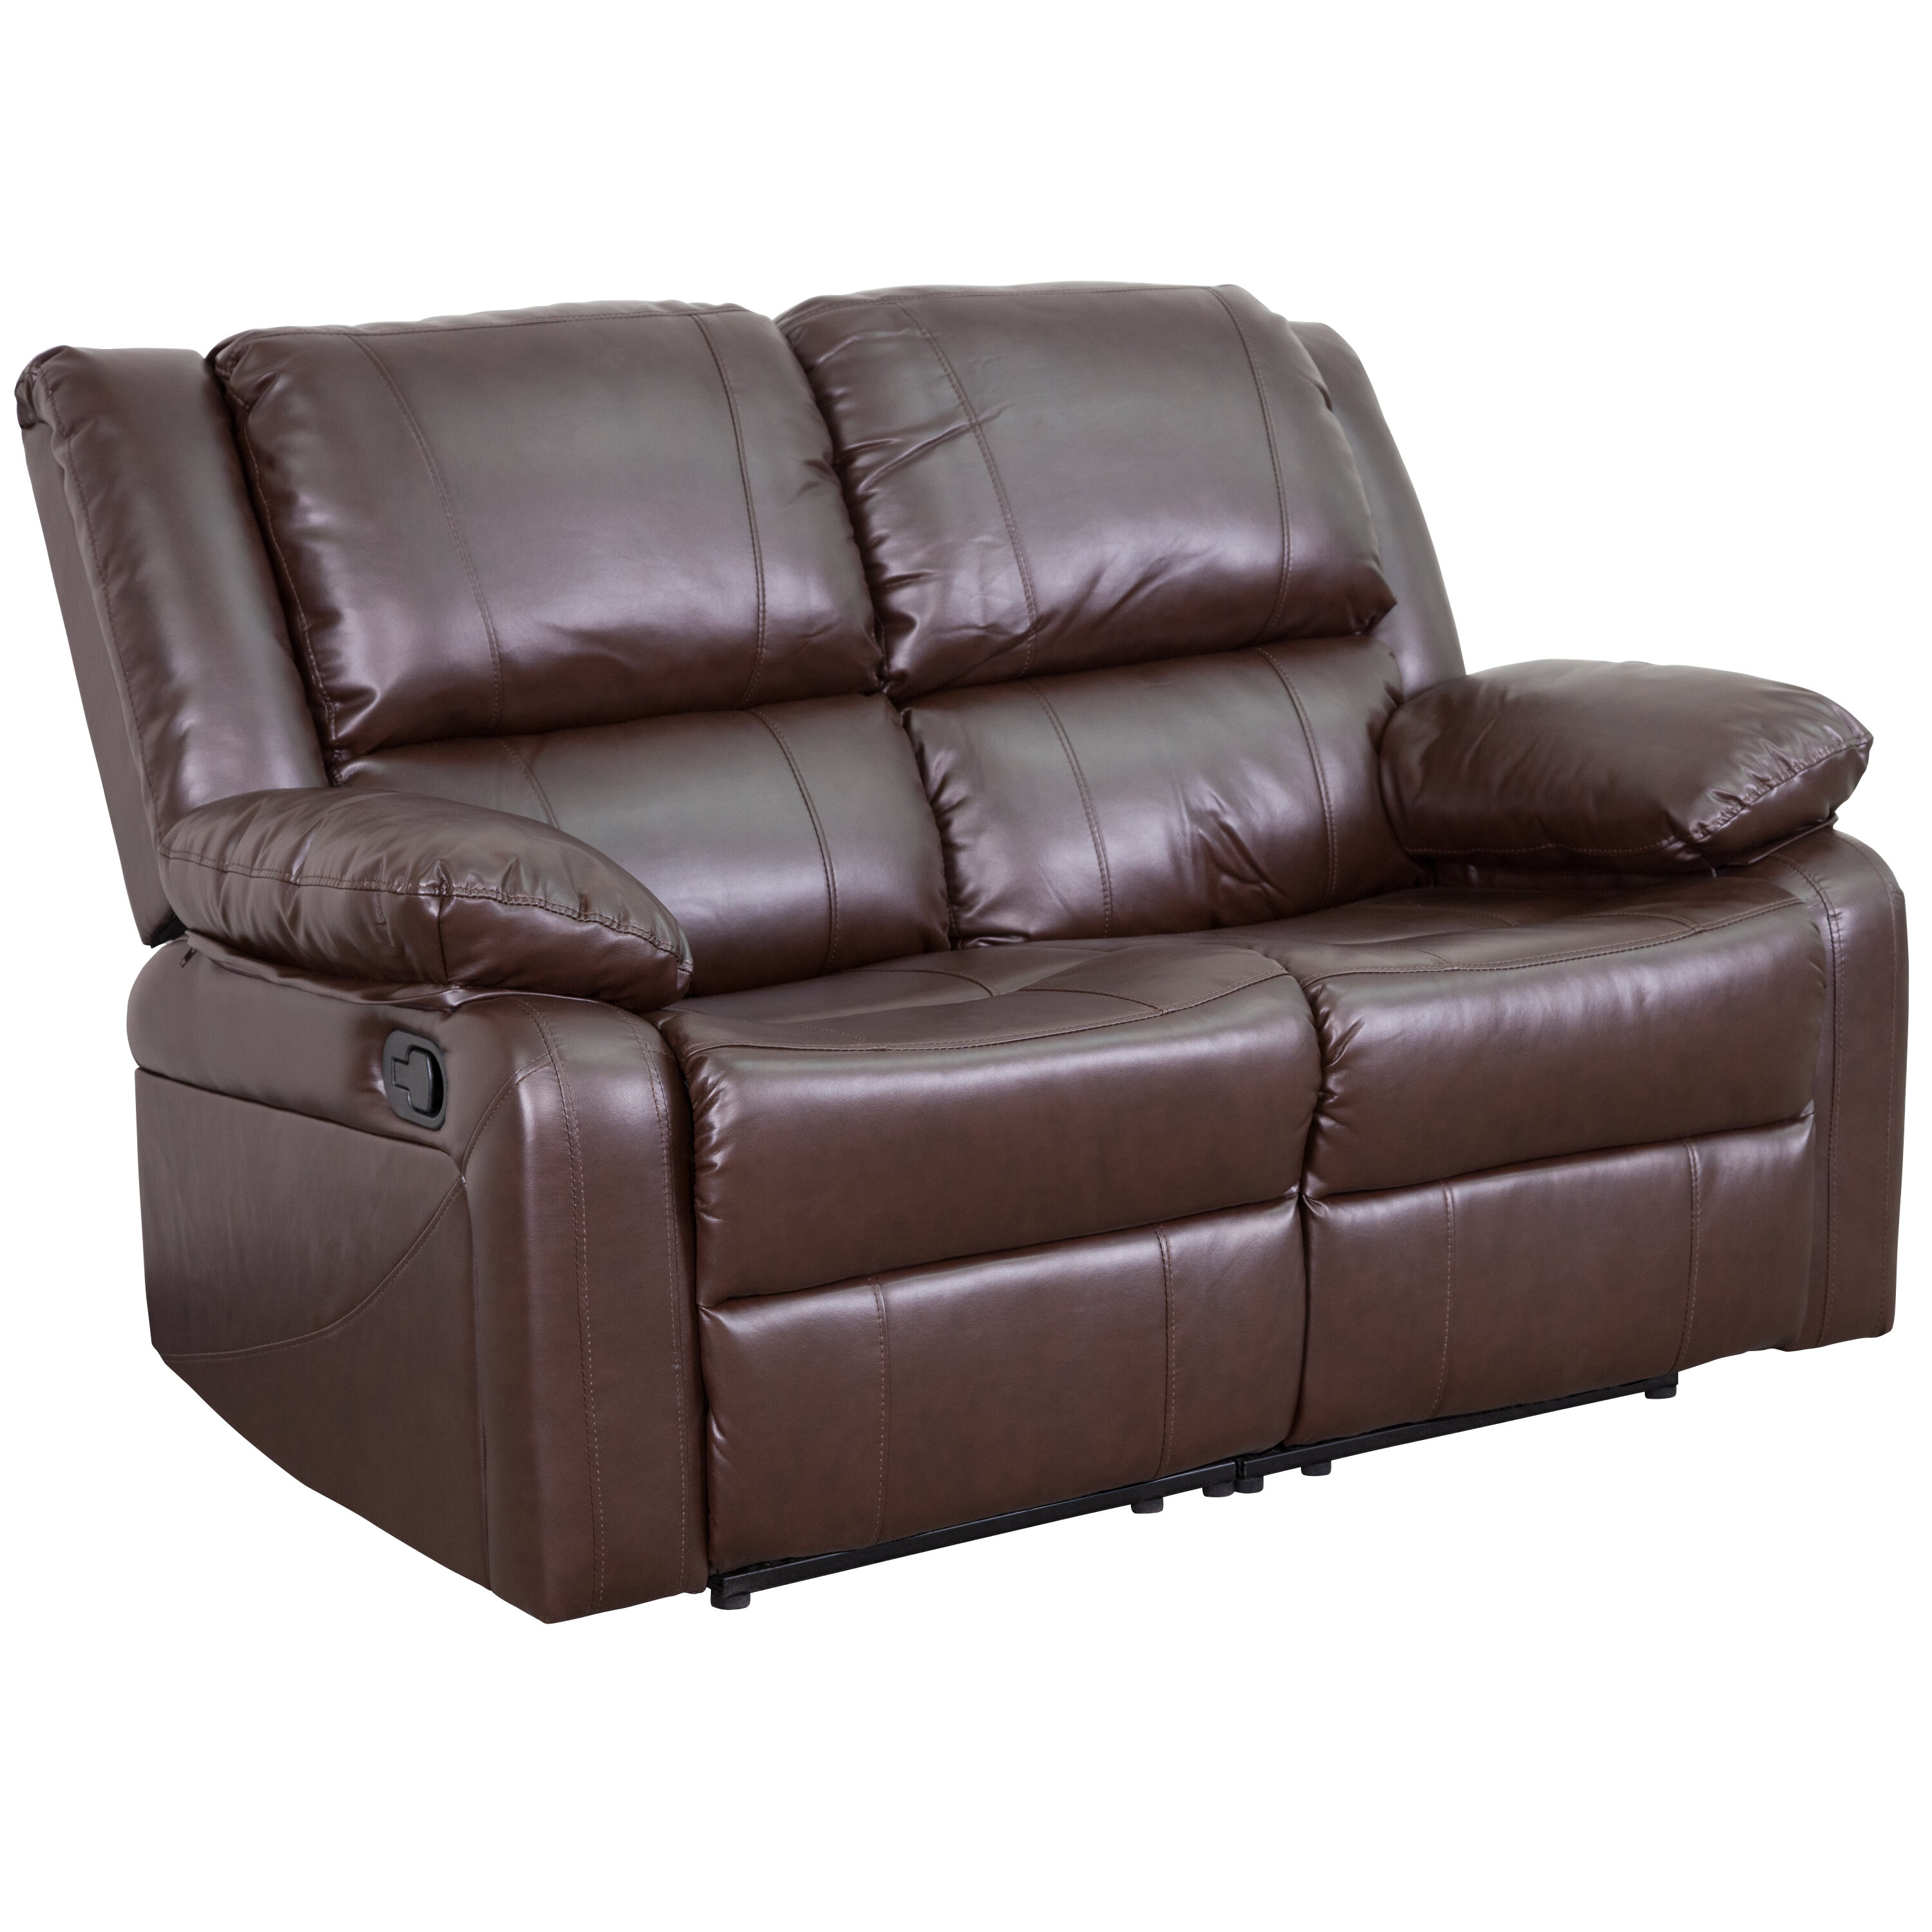 reclining trim width products threshold with port height usb loveseat catnapper cup beckett power item beckettpower